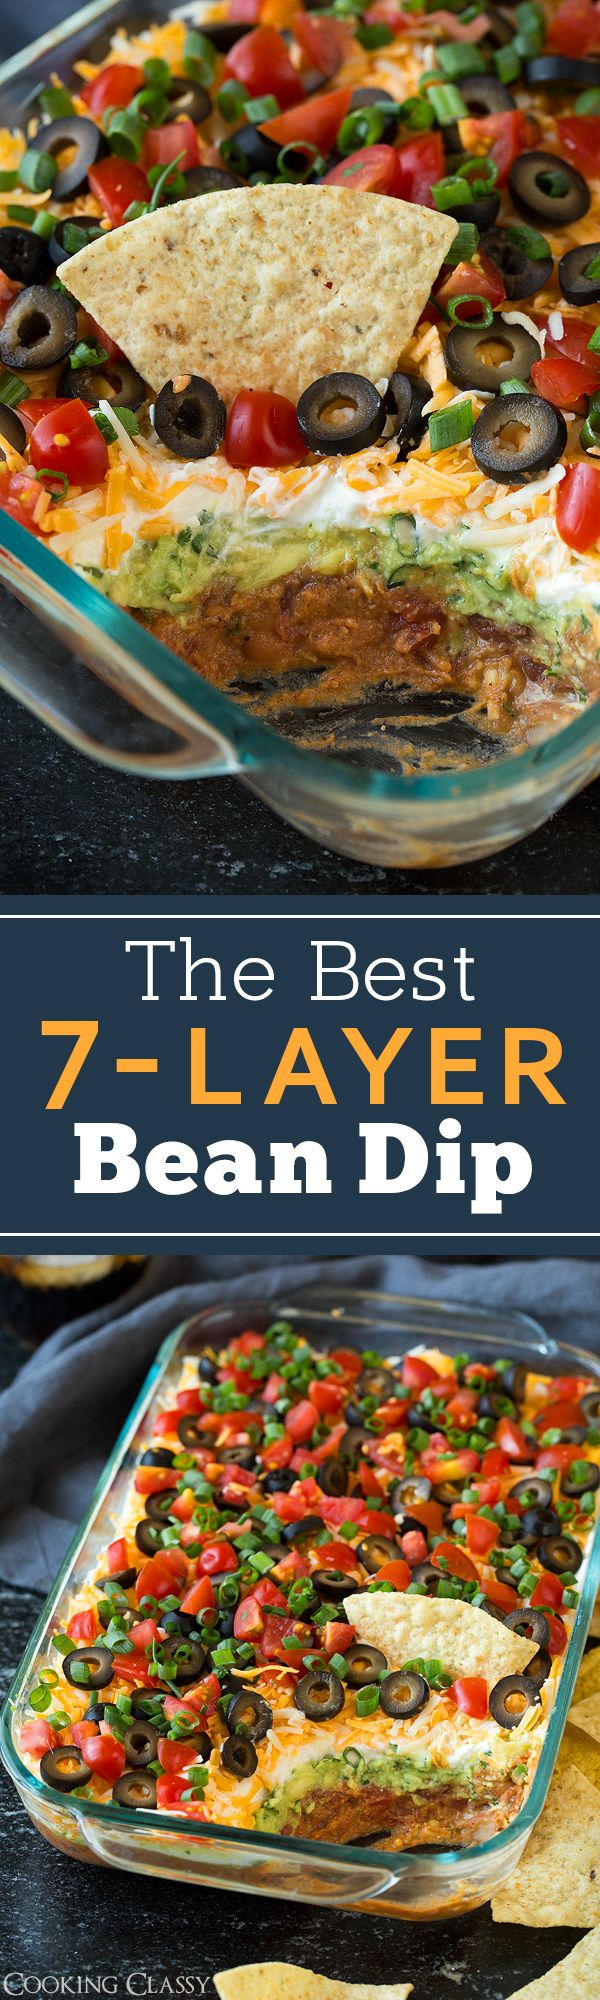 7 Layer Bean Dip Cooking Classy Favorite Salad Parties Game Day Food Recipes Food